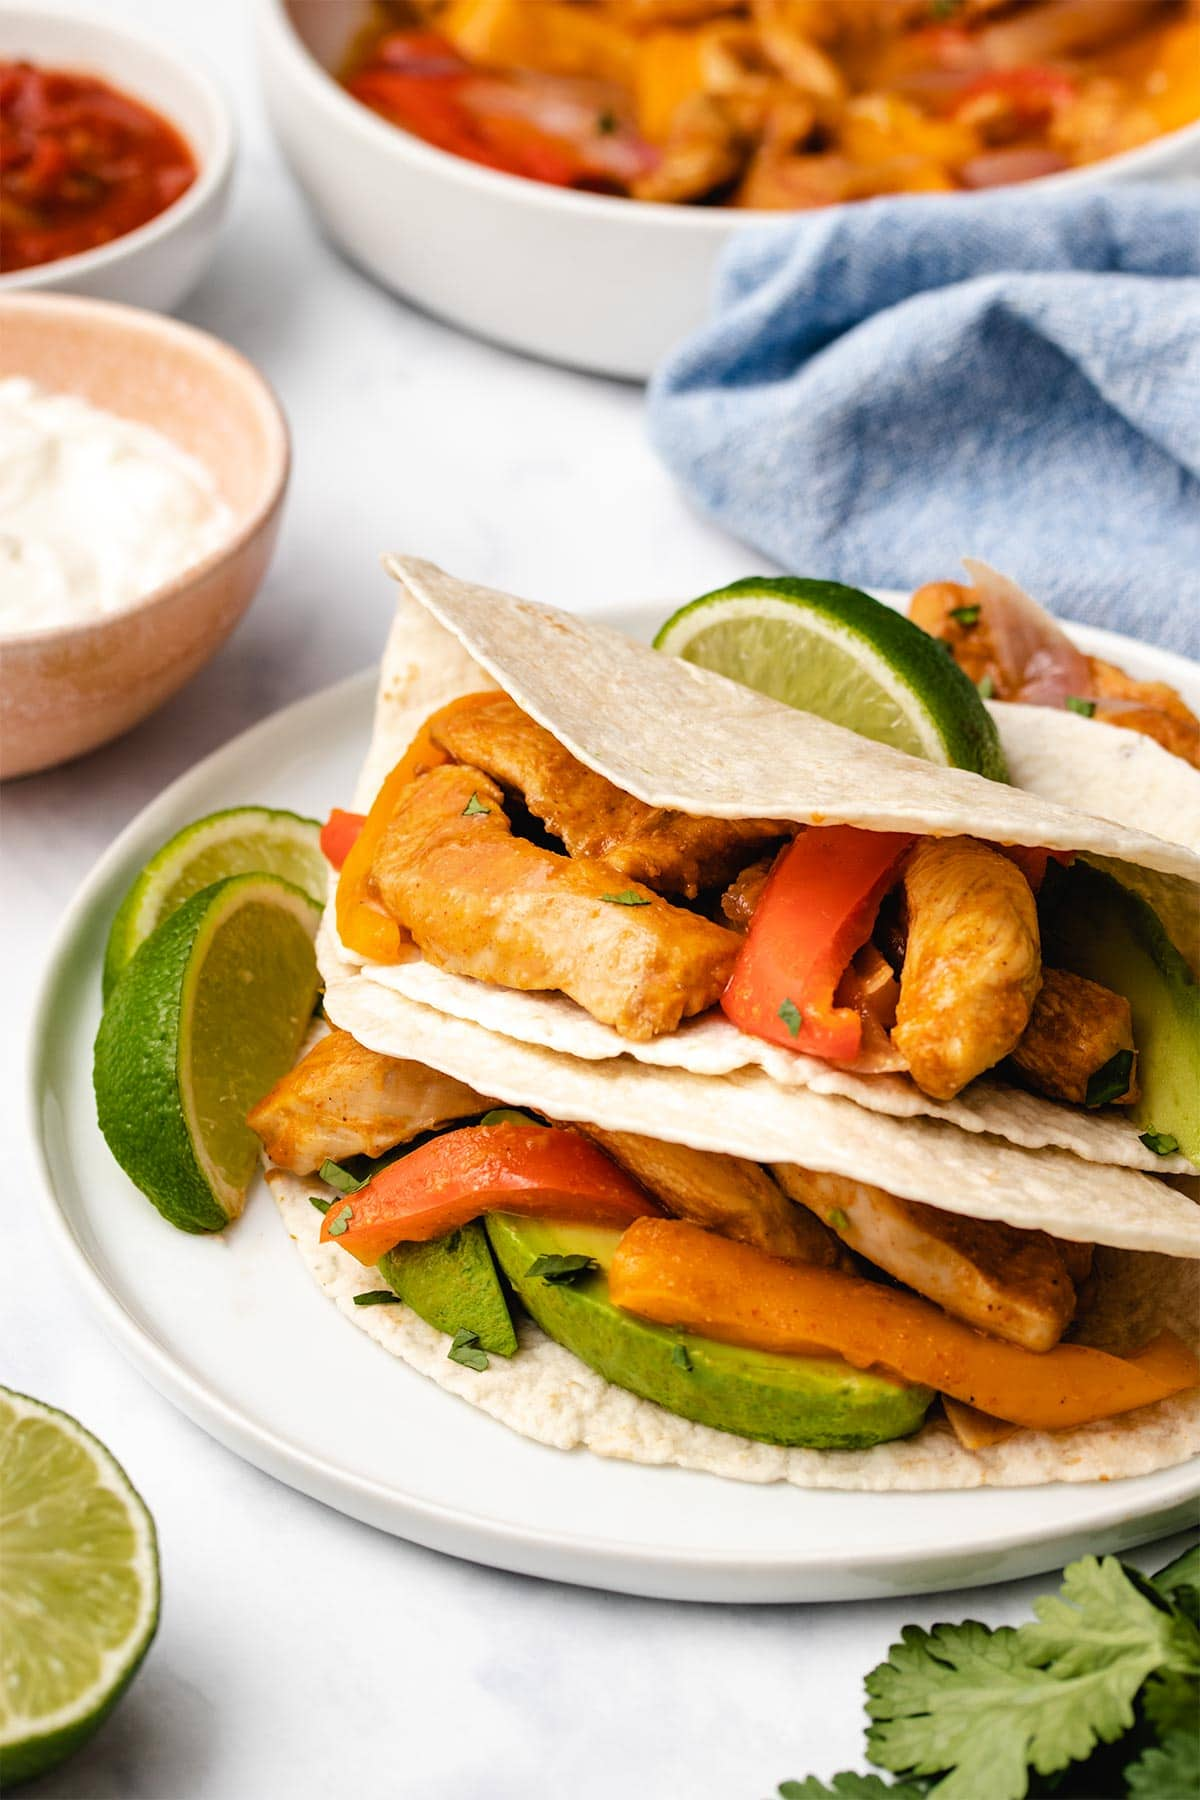 Instant Pot chicken fajita filling in stacked folded tortillas on a white plate.